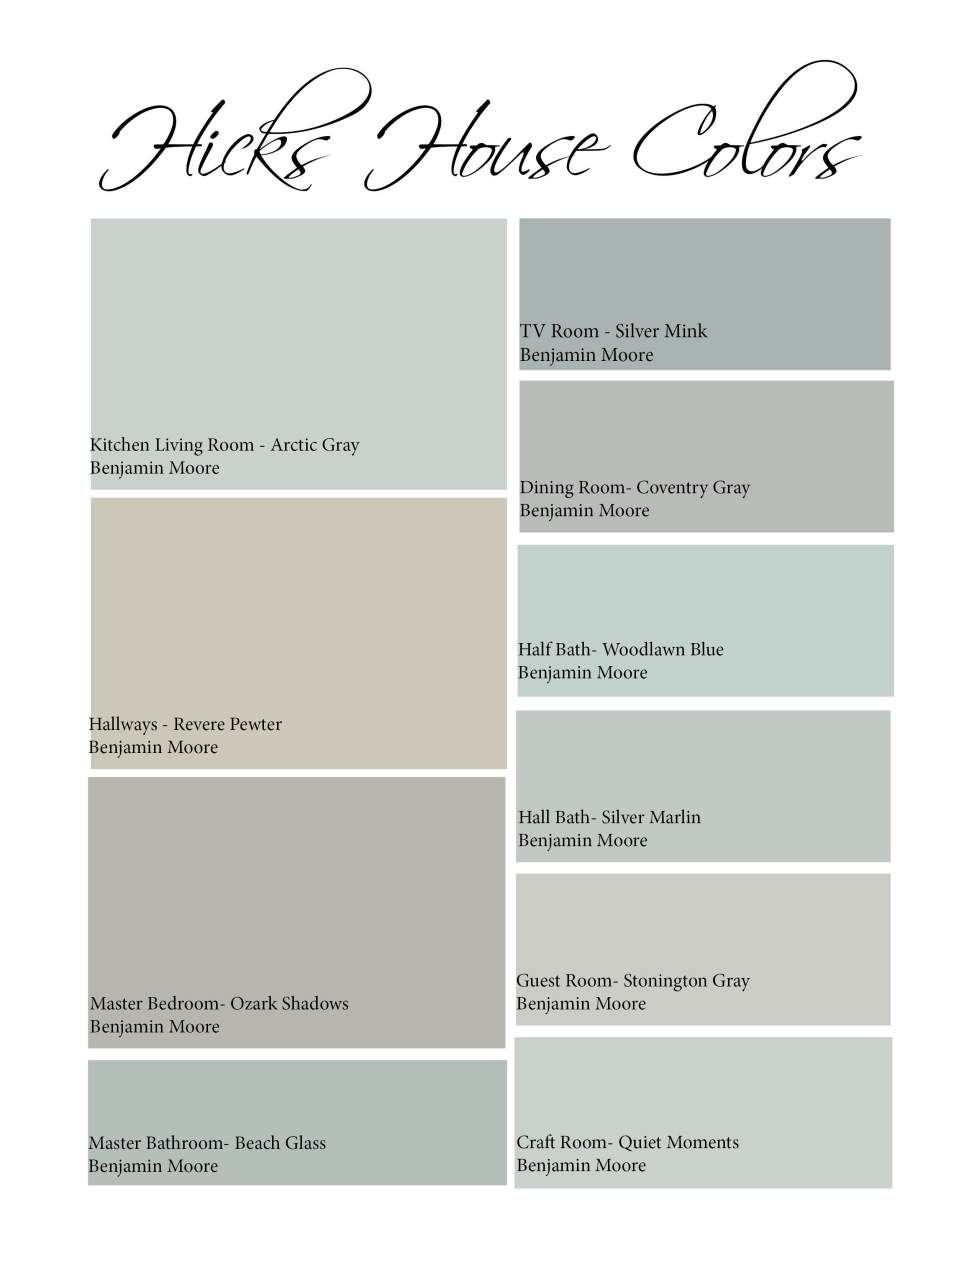 Gray interior paint color schemes - Hicks House Color Scheme Revere Pewter